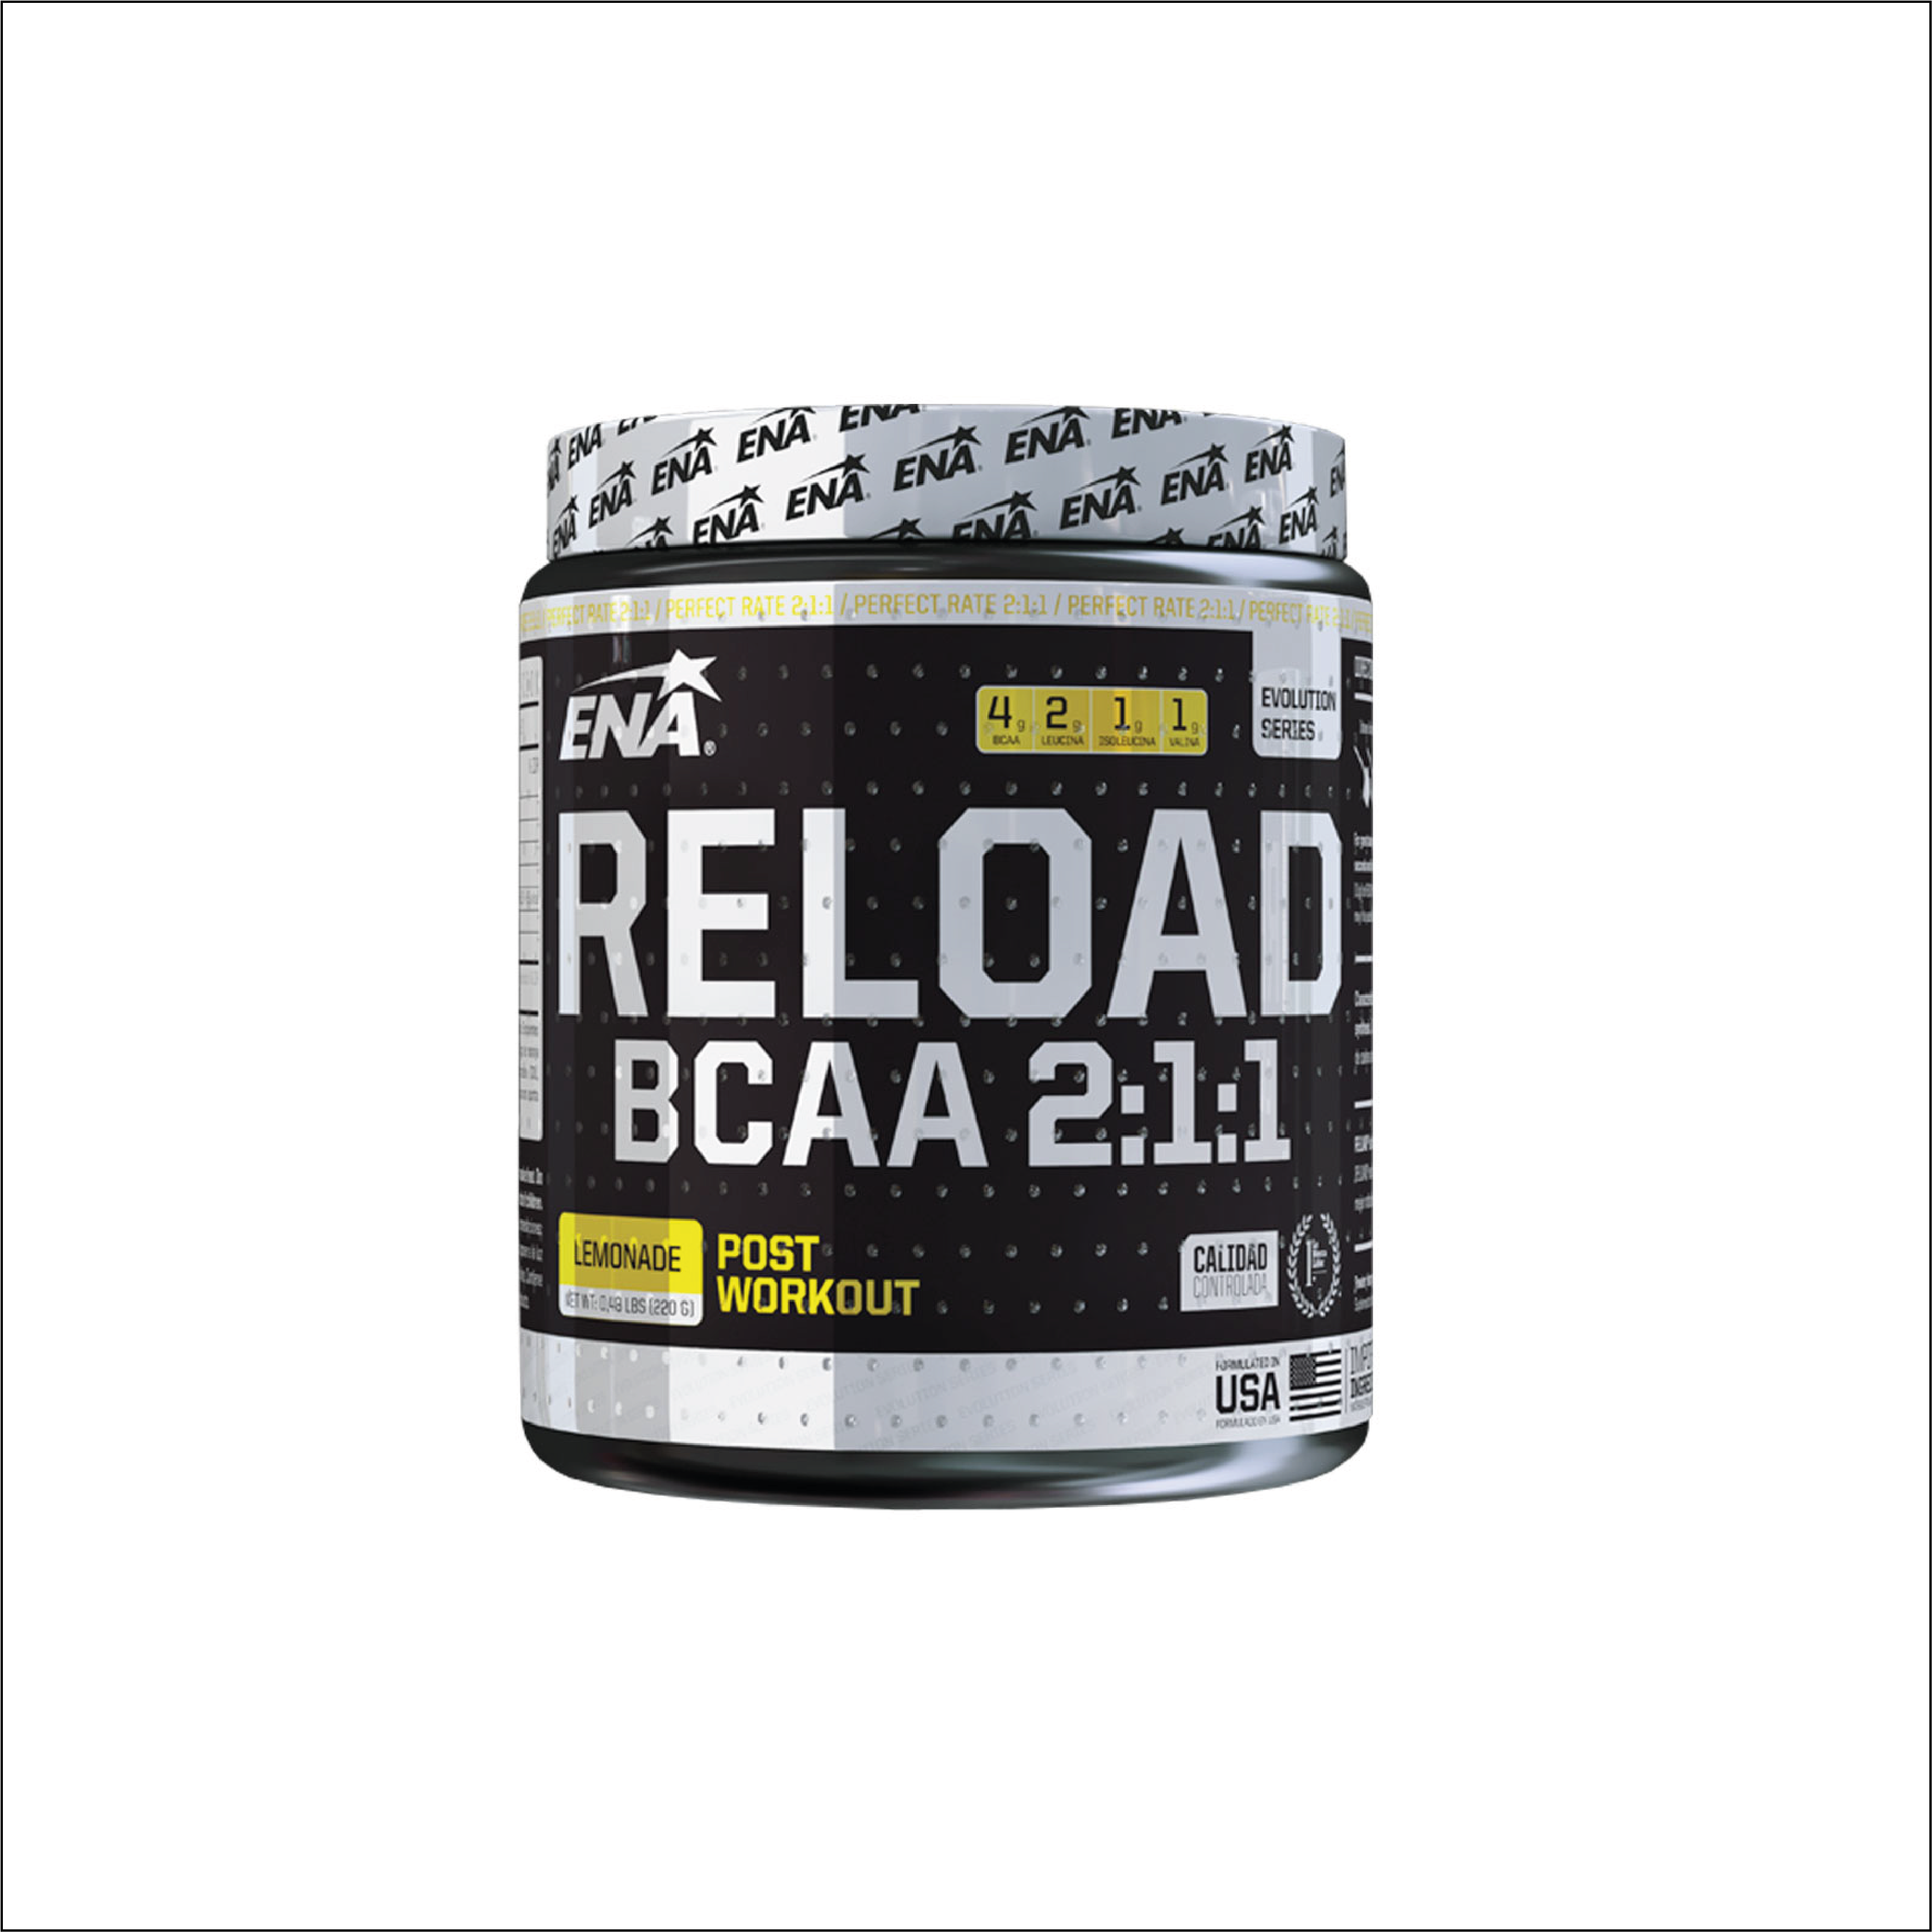 6 BCAA RELOAD ENA